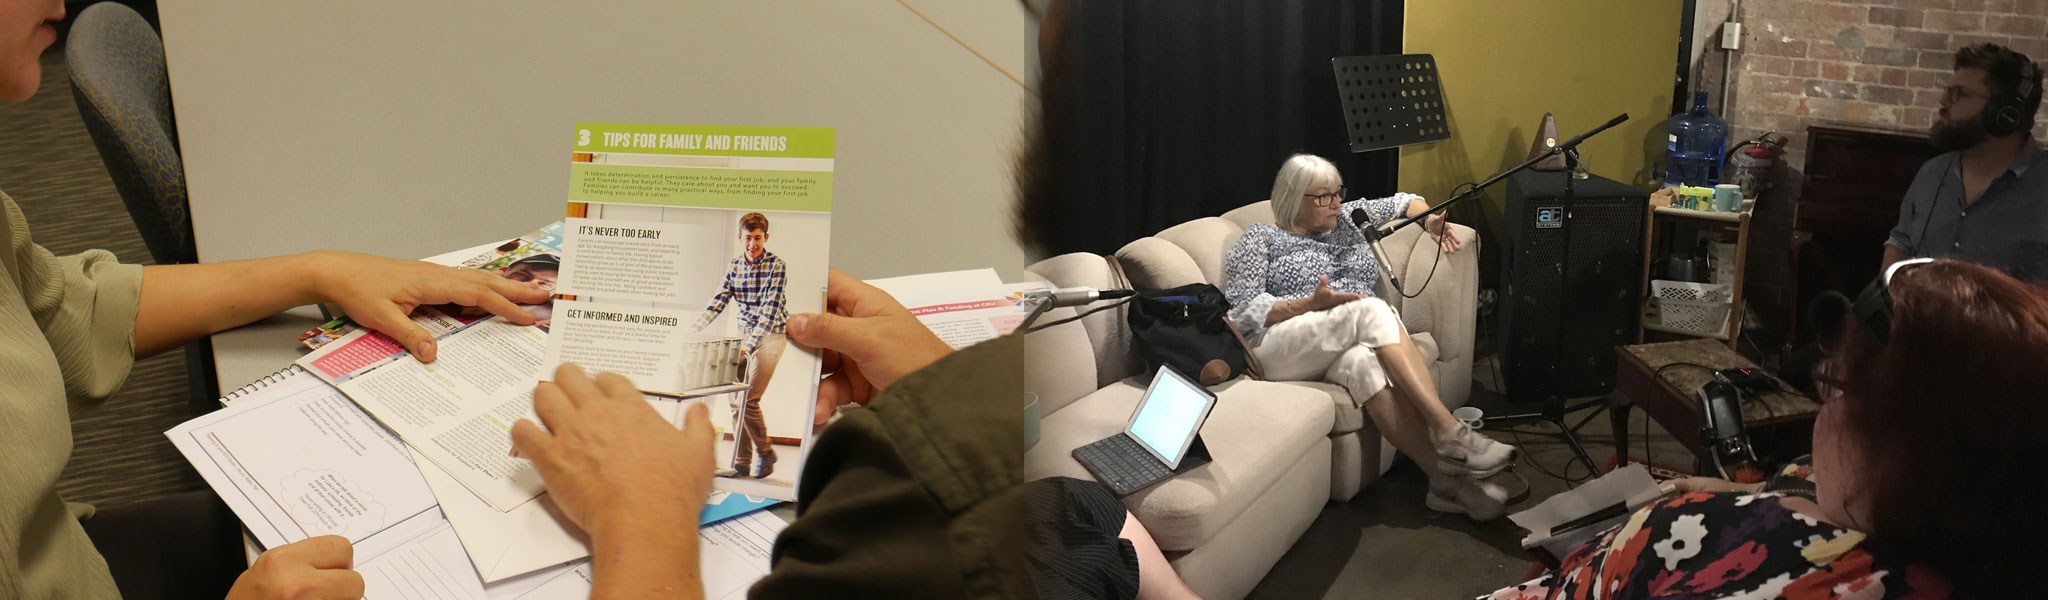 Two images.  The first is two people discussing a series of factsheets.  The second is a group of people in sitting around in a recording studio while a podcast is being recorded